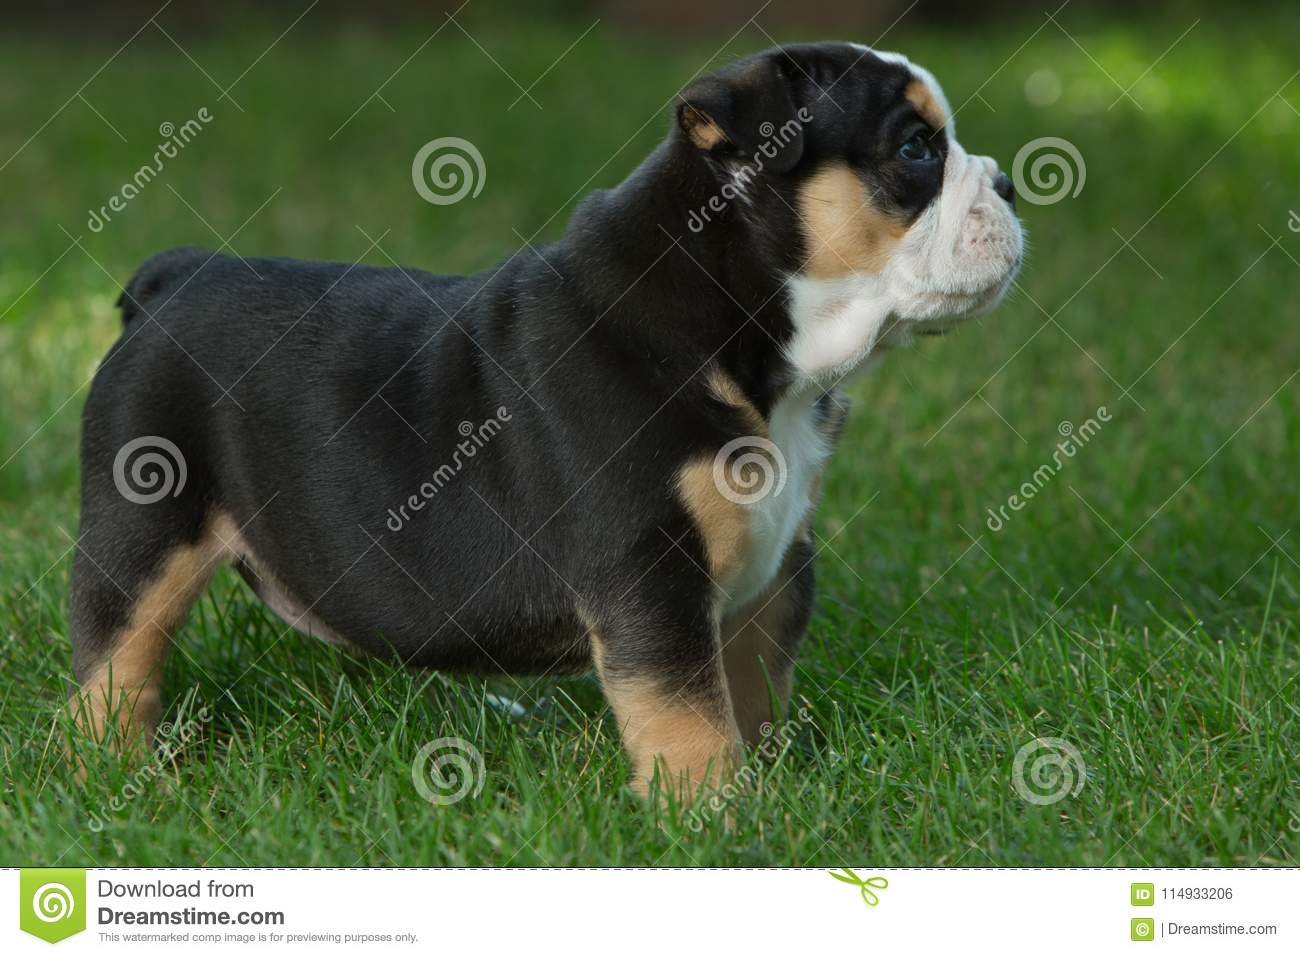 Cute Brown And Black Wrinkled Bulldog Puppy In The Grass Looking At Something Stock Photo Image Of Area Standing 114933206